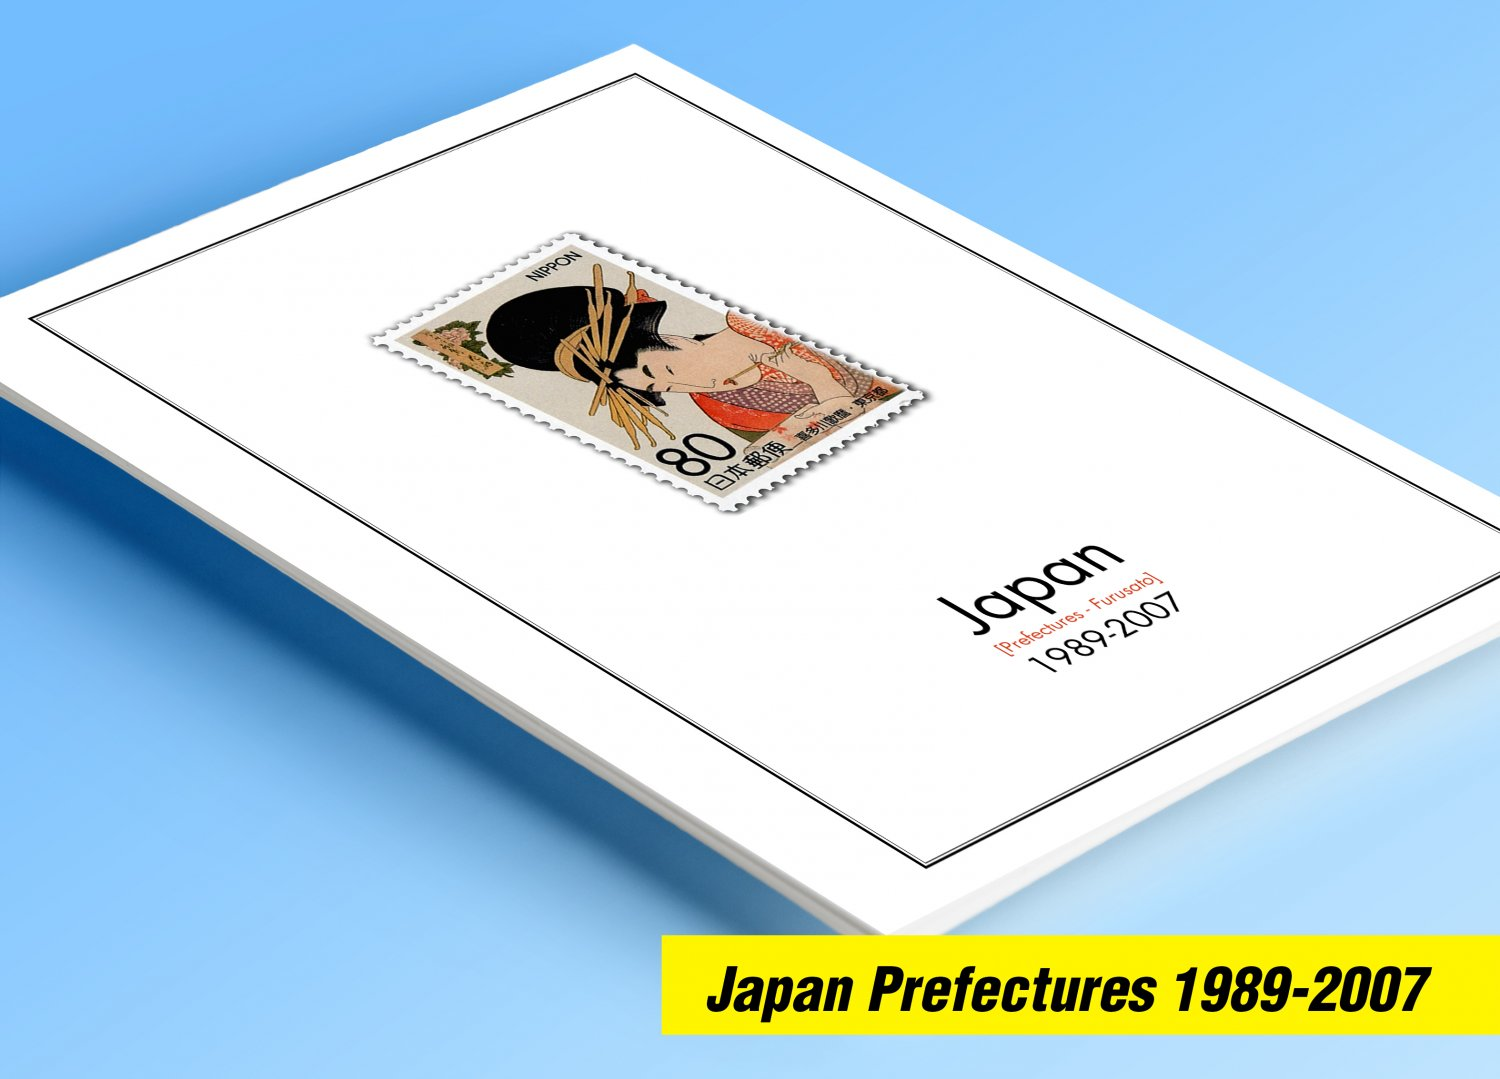 COLOR PRINTED JAPAN PREFECTURES [FURUSATO] 1989-2007 STAMP ALBUM PAGES  (77 pages)